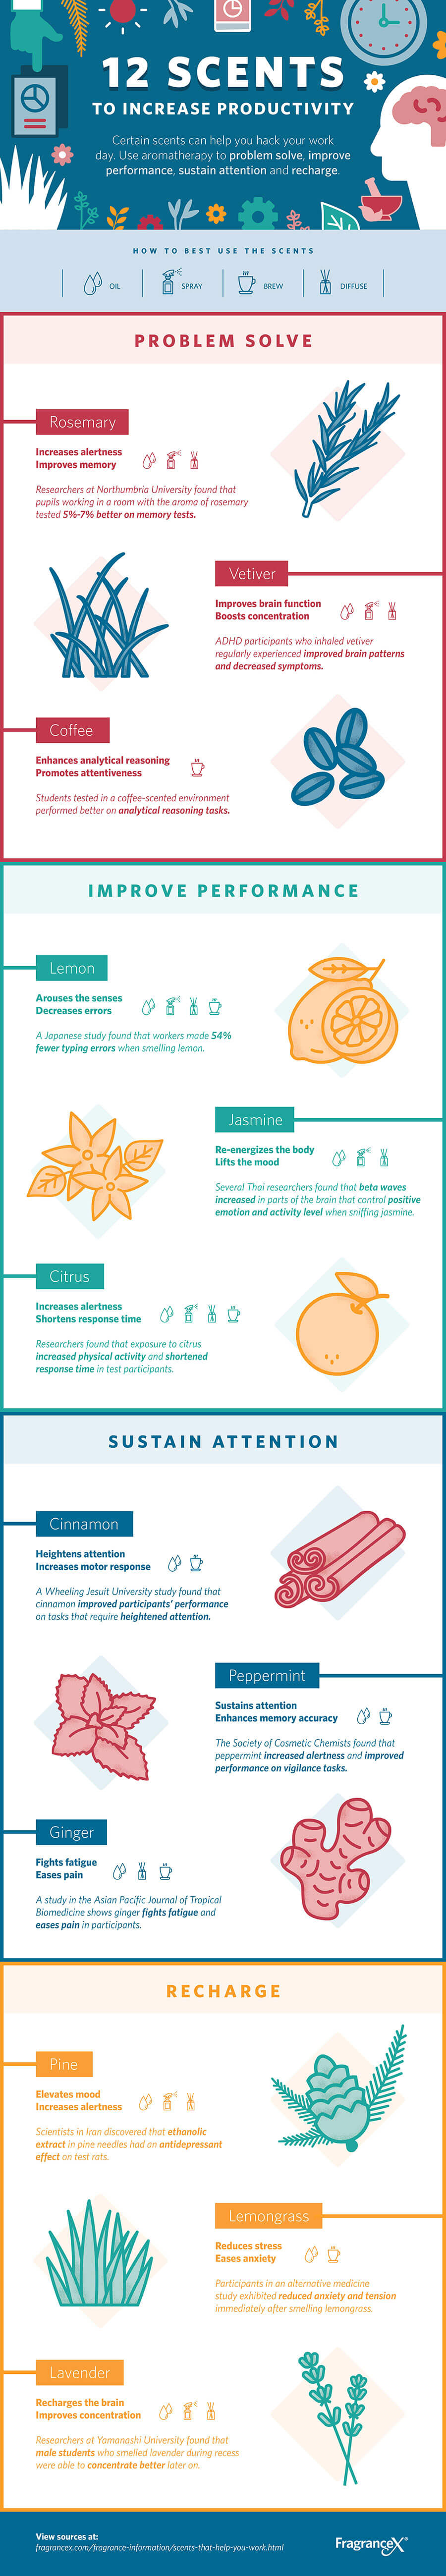 Infographic: 12 scents to increase productivity